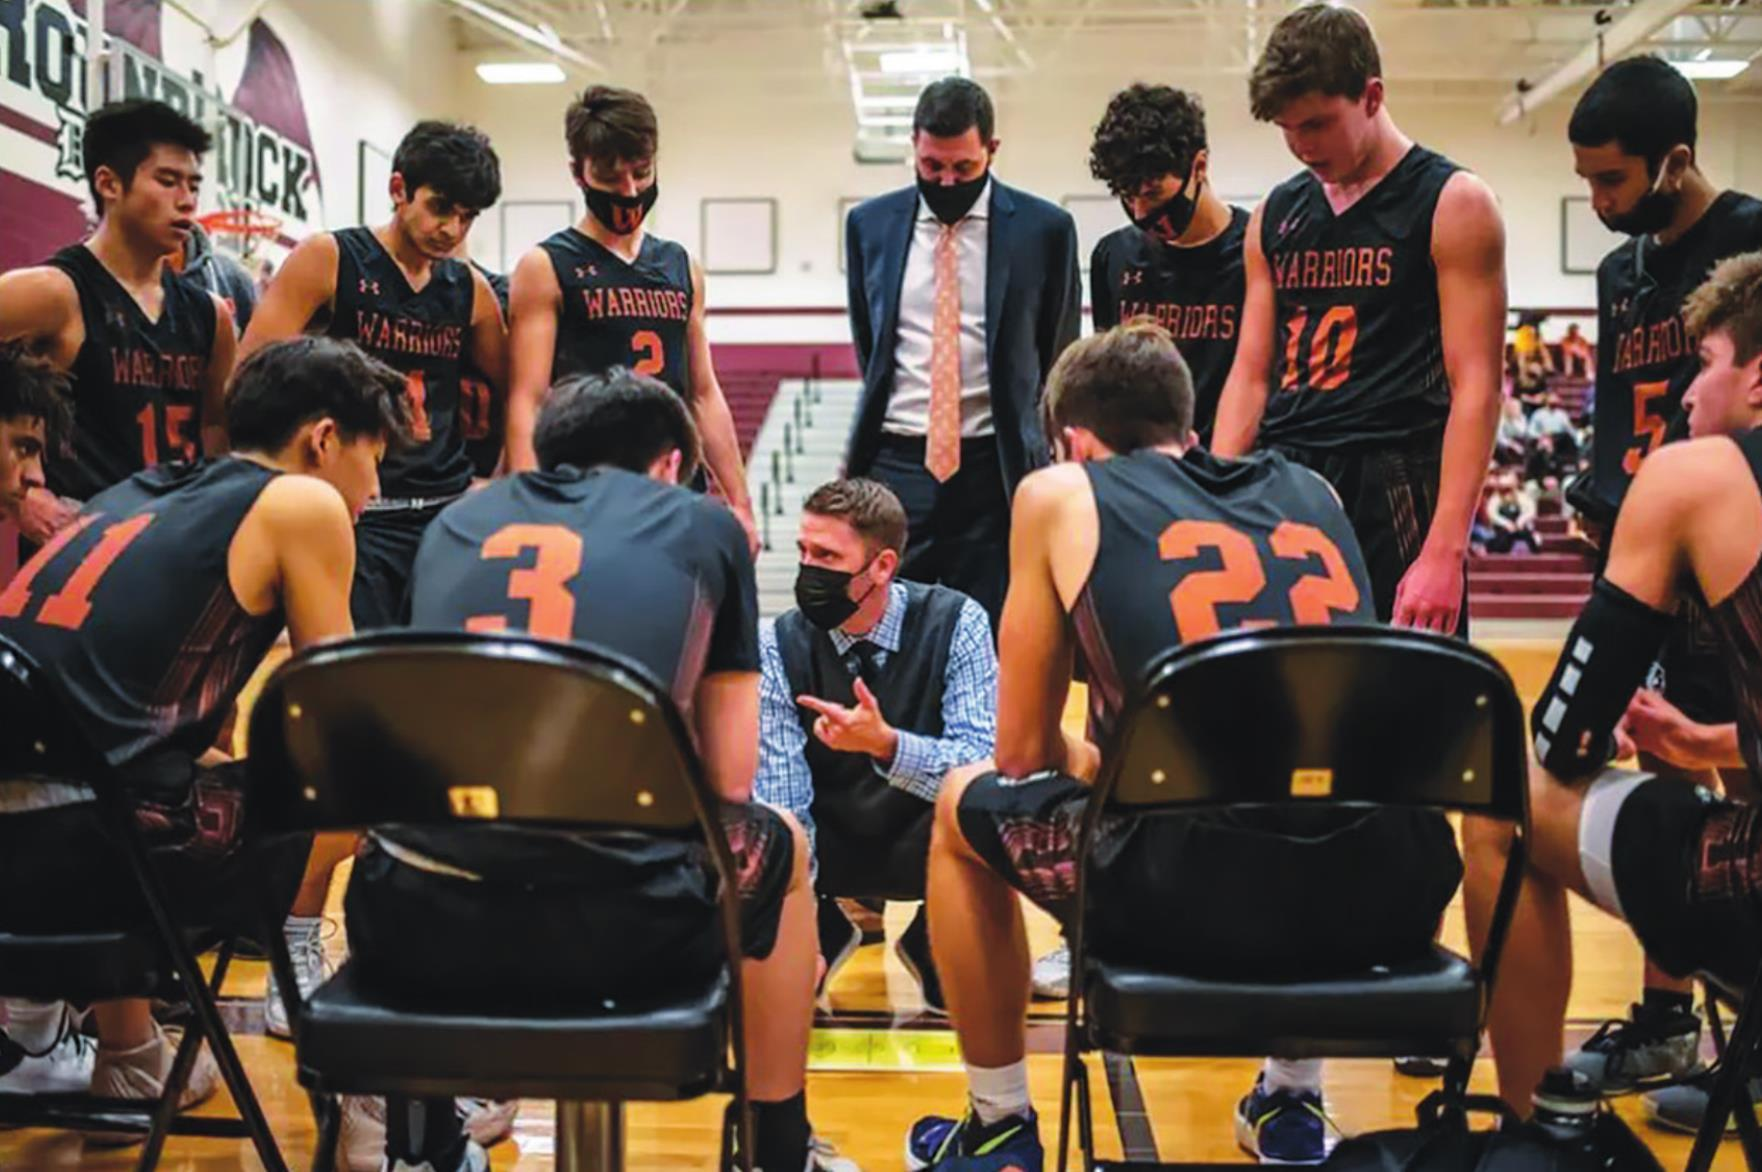 Westwood High School head basketball coach Brad Hastings speaks to his team during a time out at game. Hastings said many of his students have trained most of their lives, and it'd be a shame if the seniors didn't have the opportunity to play. Photo b